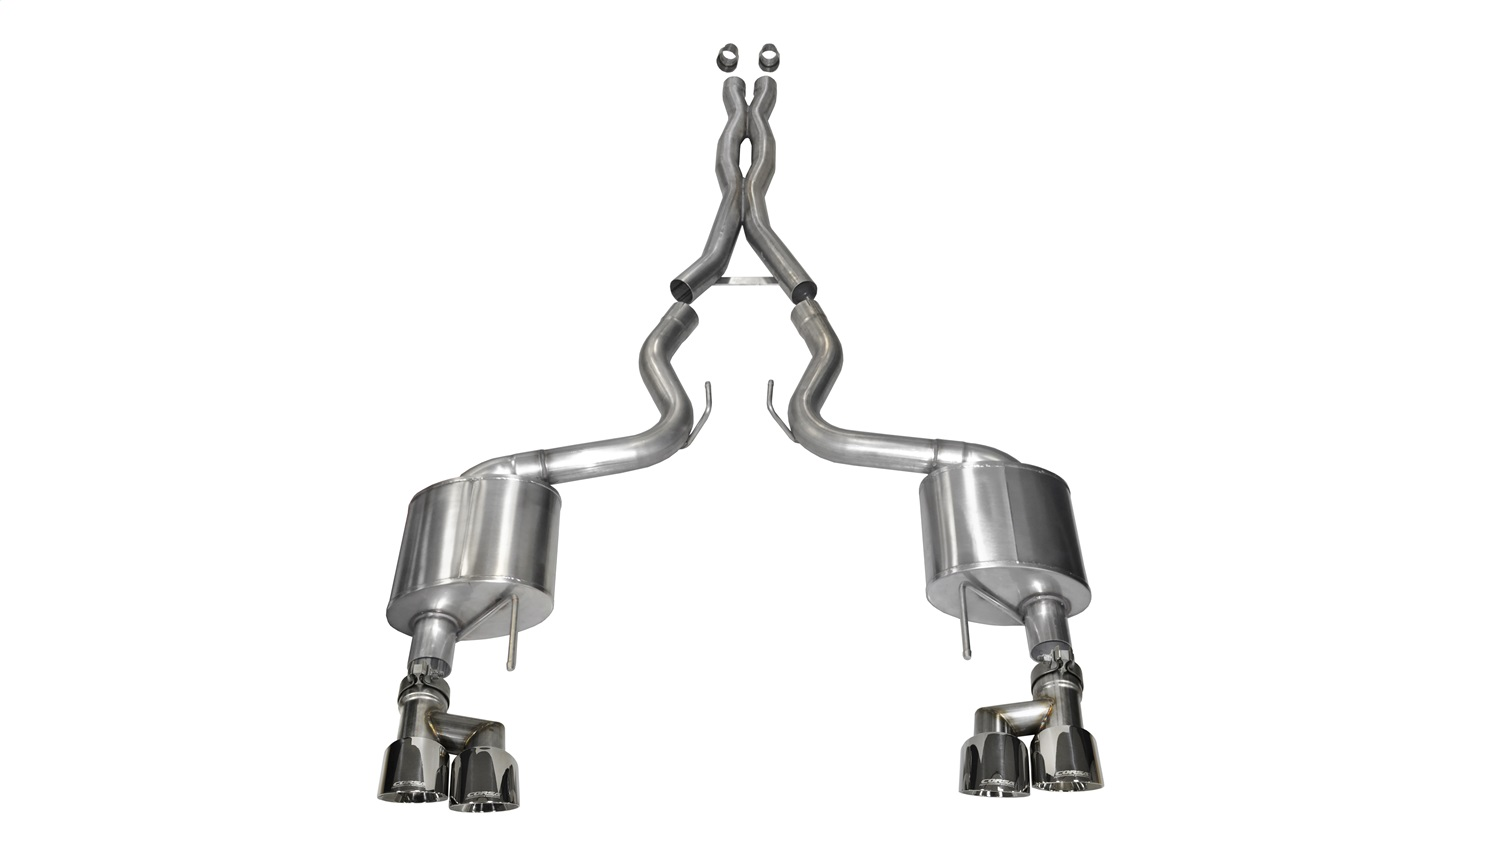 Corsa Performance 14335 Xtreme Cat-Back Exhaust System Fits 15-18 Mustang